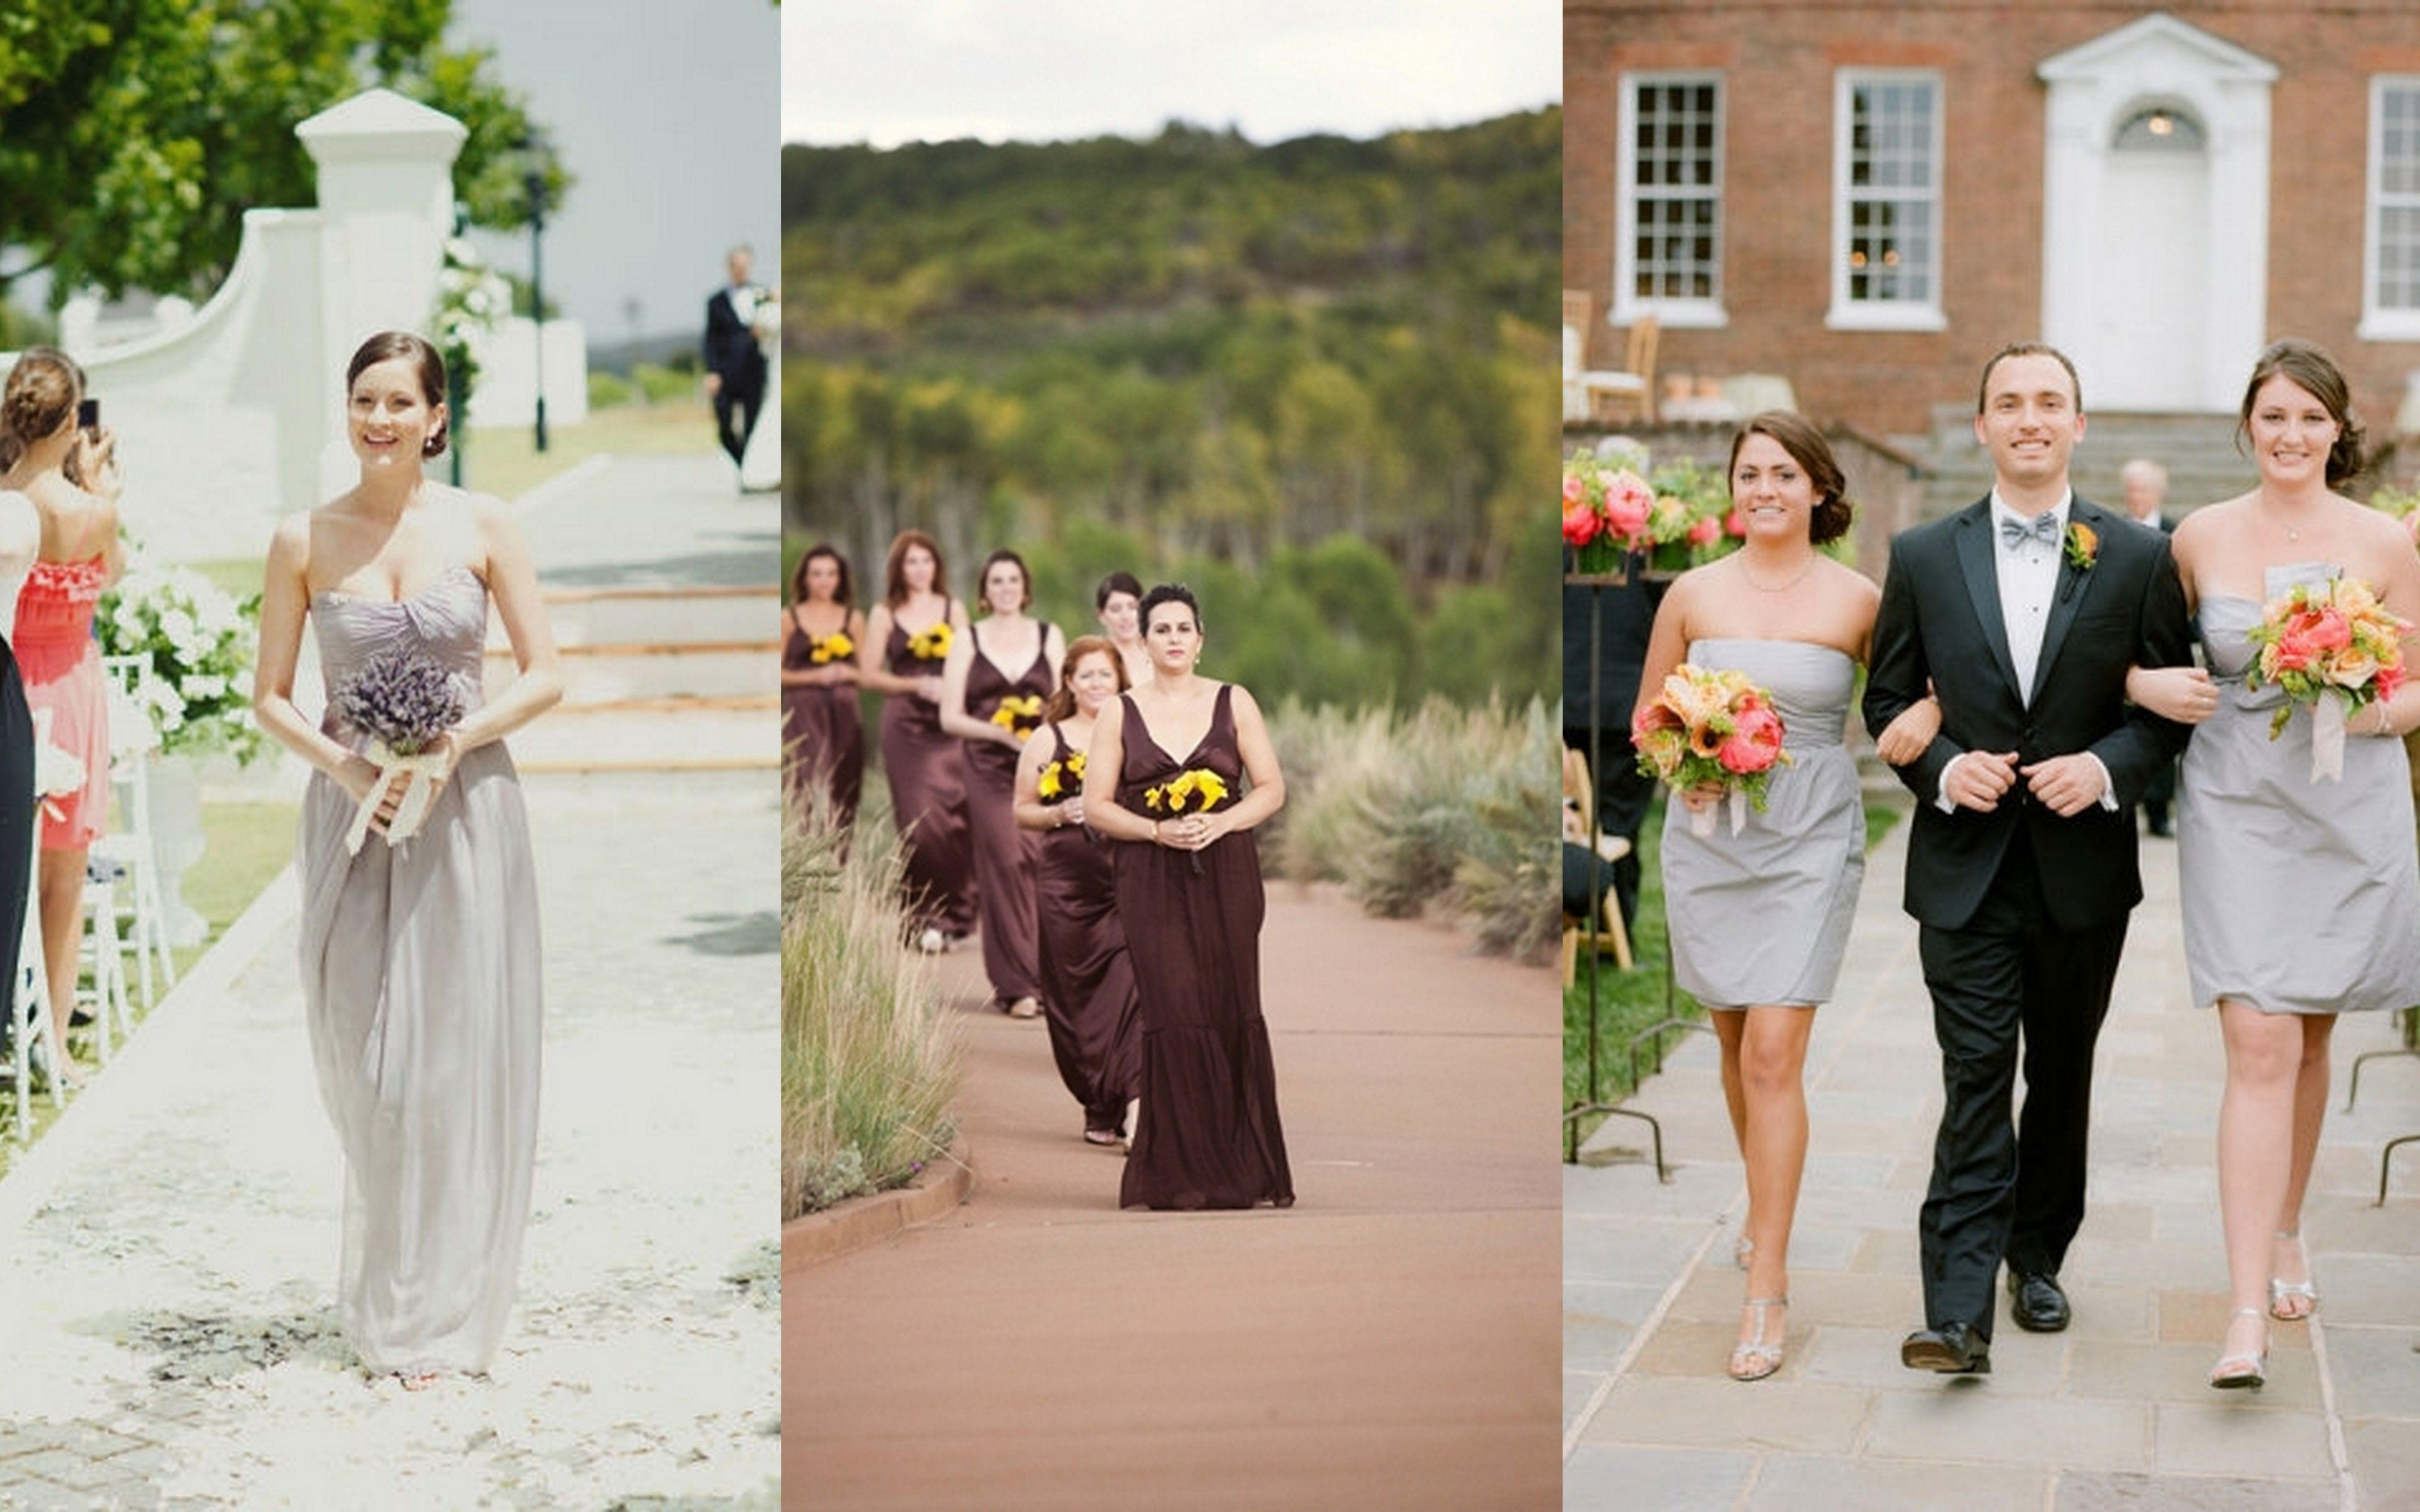 Songs For Bridesmaids To Walk Down The Aisle To: Processional Songs